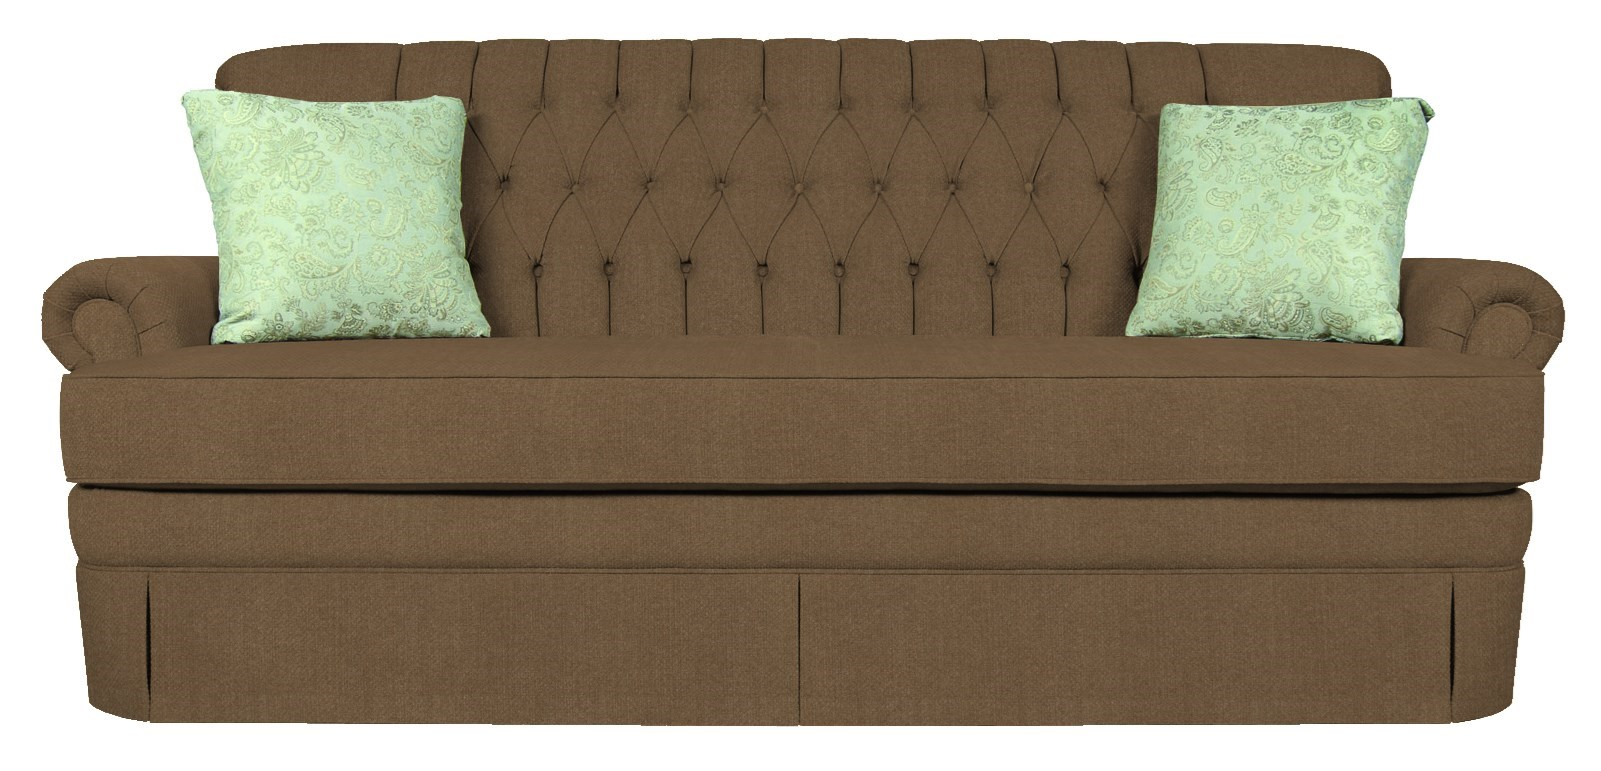 Sofa Outlet Paisley England Fernwood 1155 Sofa With Skirt Efo Furniture Outlet Sofas